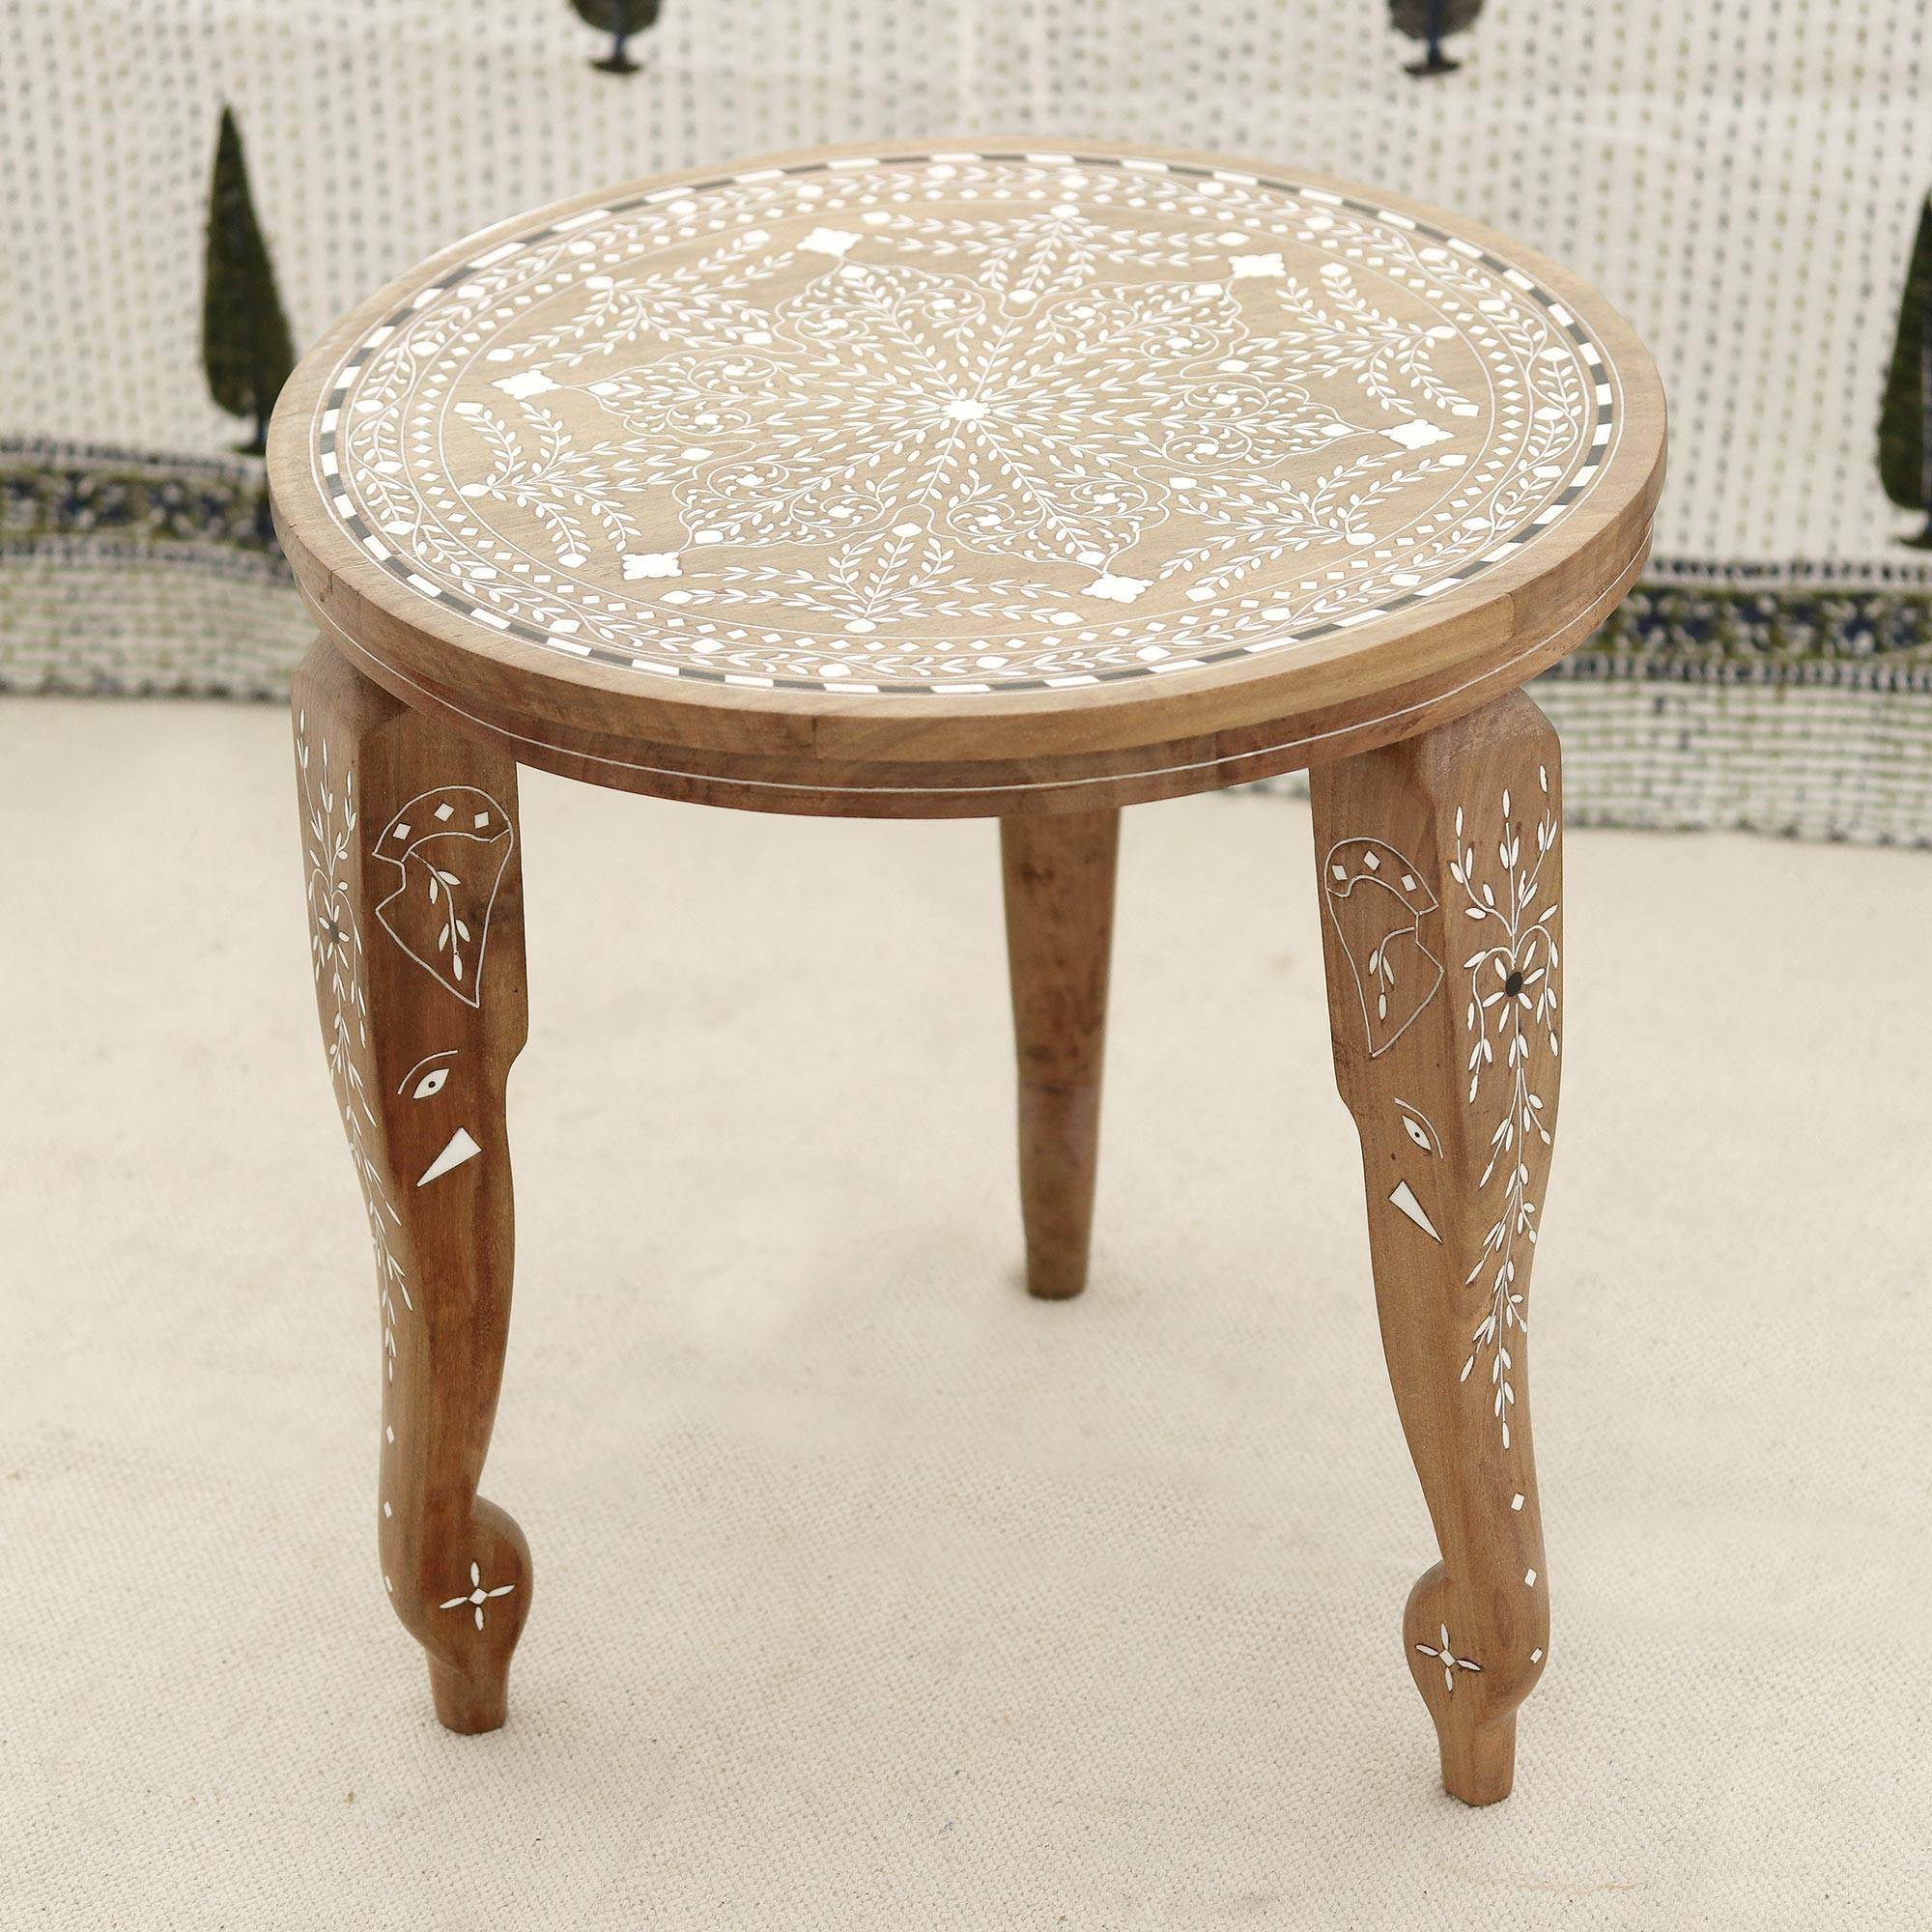 Handmade jamun wood end table with leaf motifs from india elephant majesty